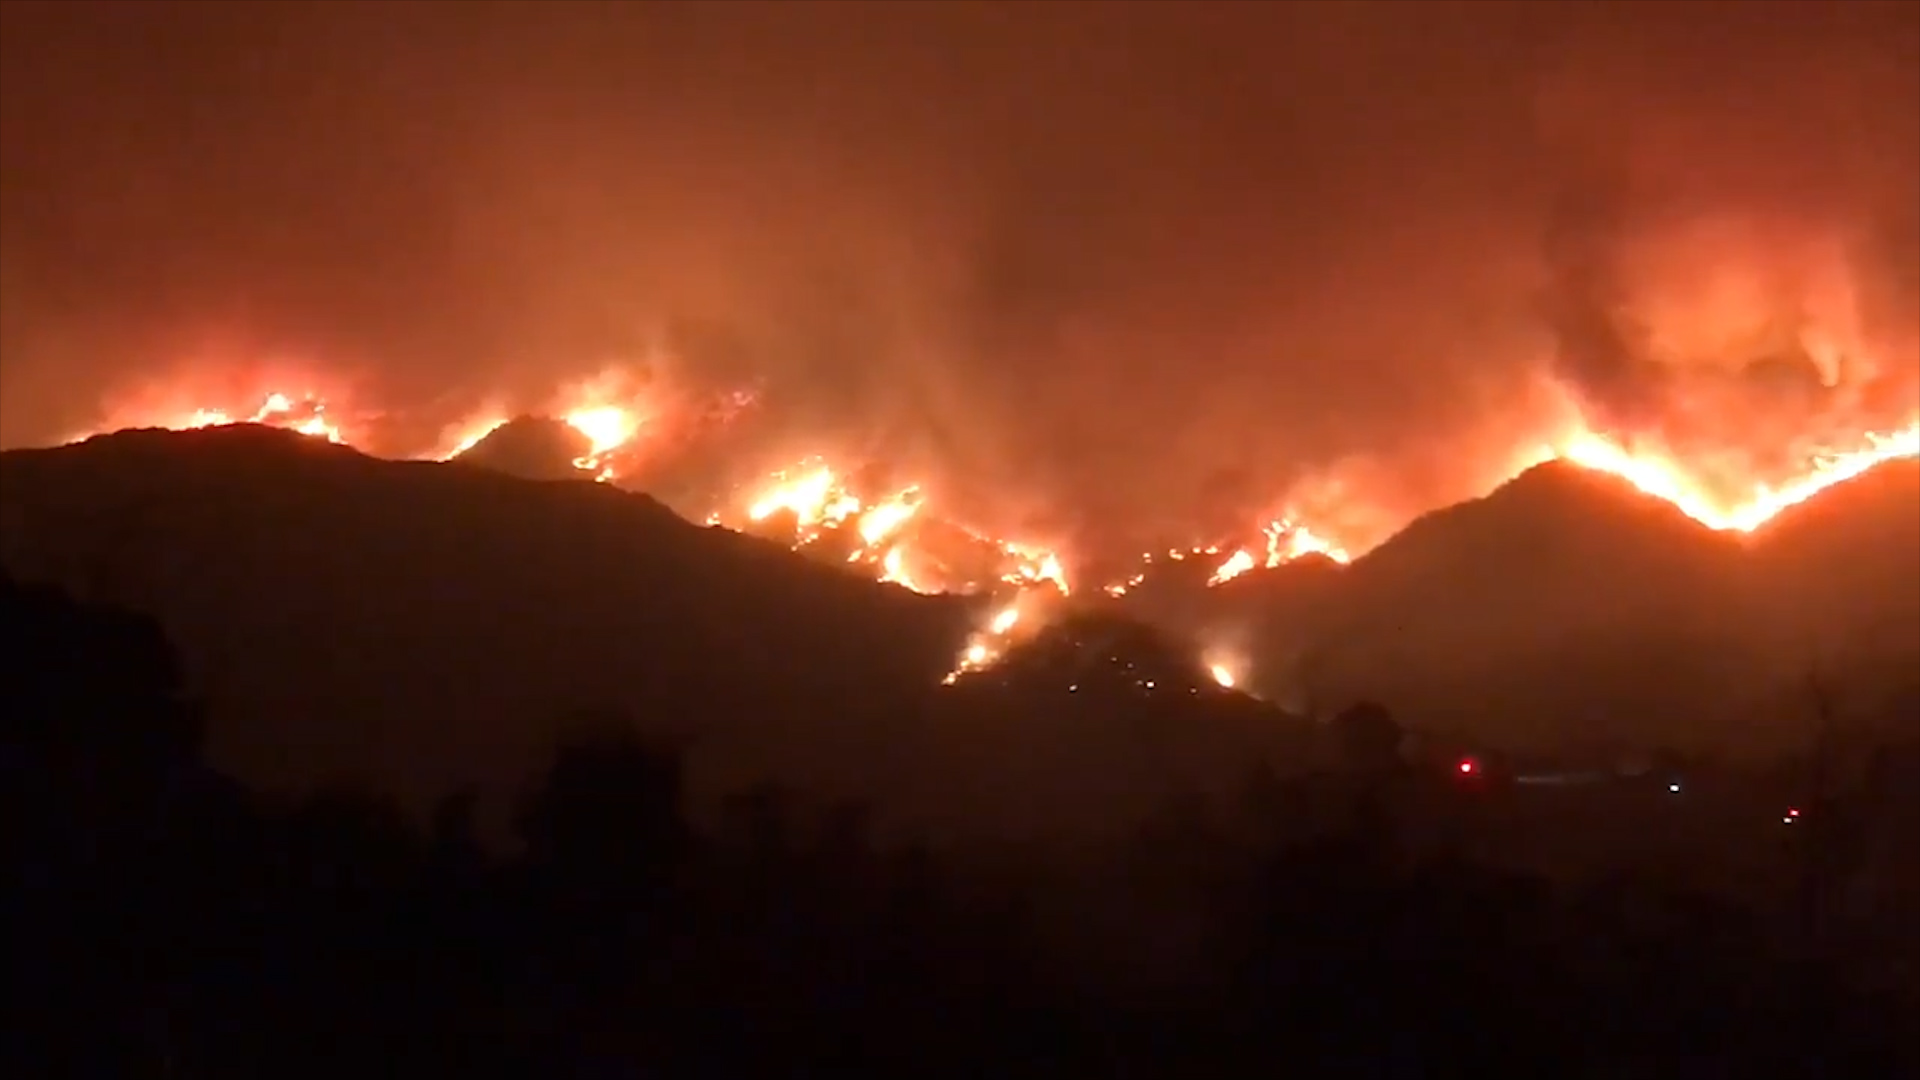 Illegal cooking fire caused devastating Skirball Fire in Southern Calif., officials say